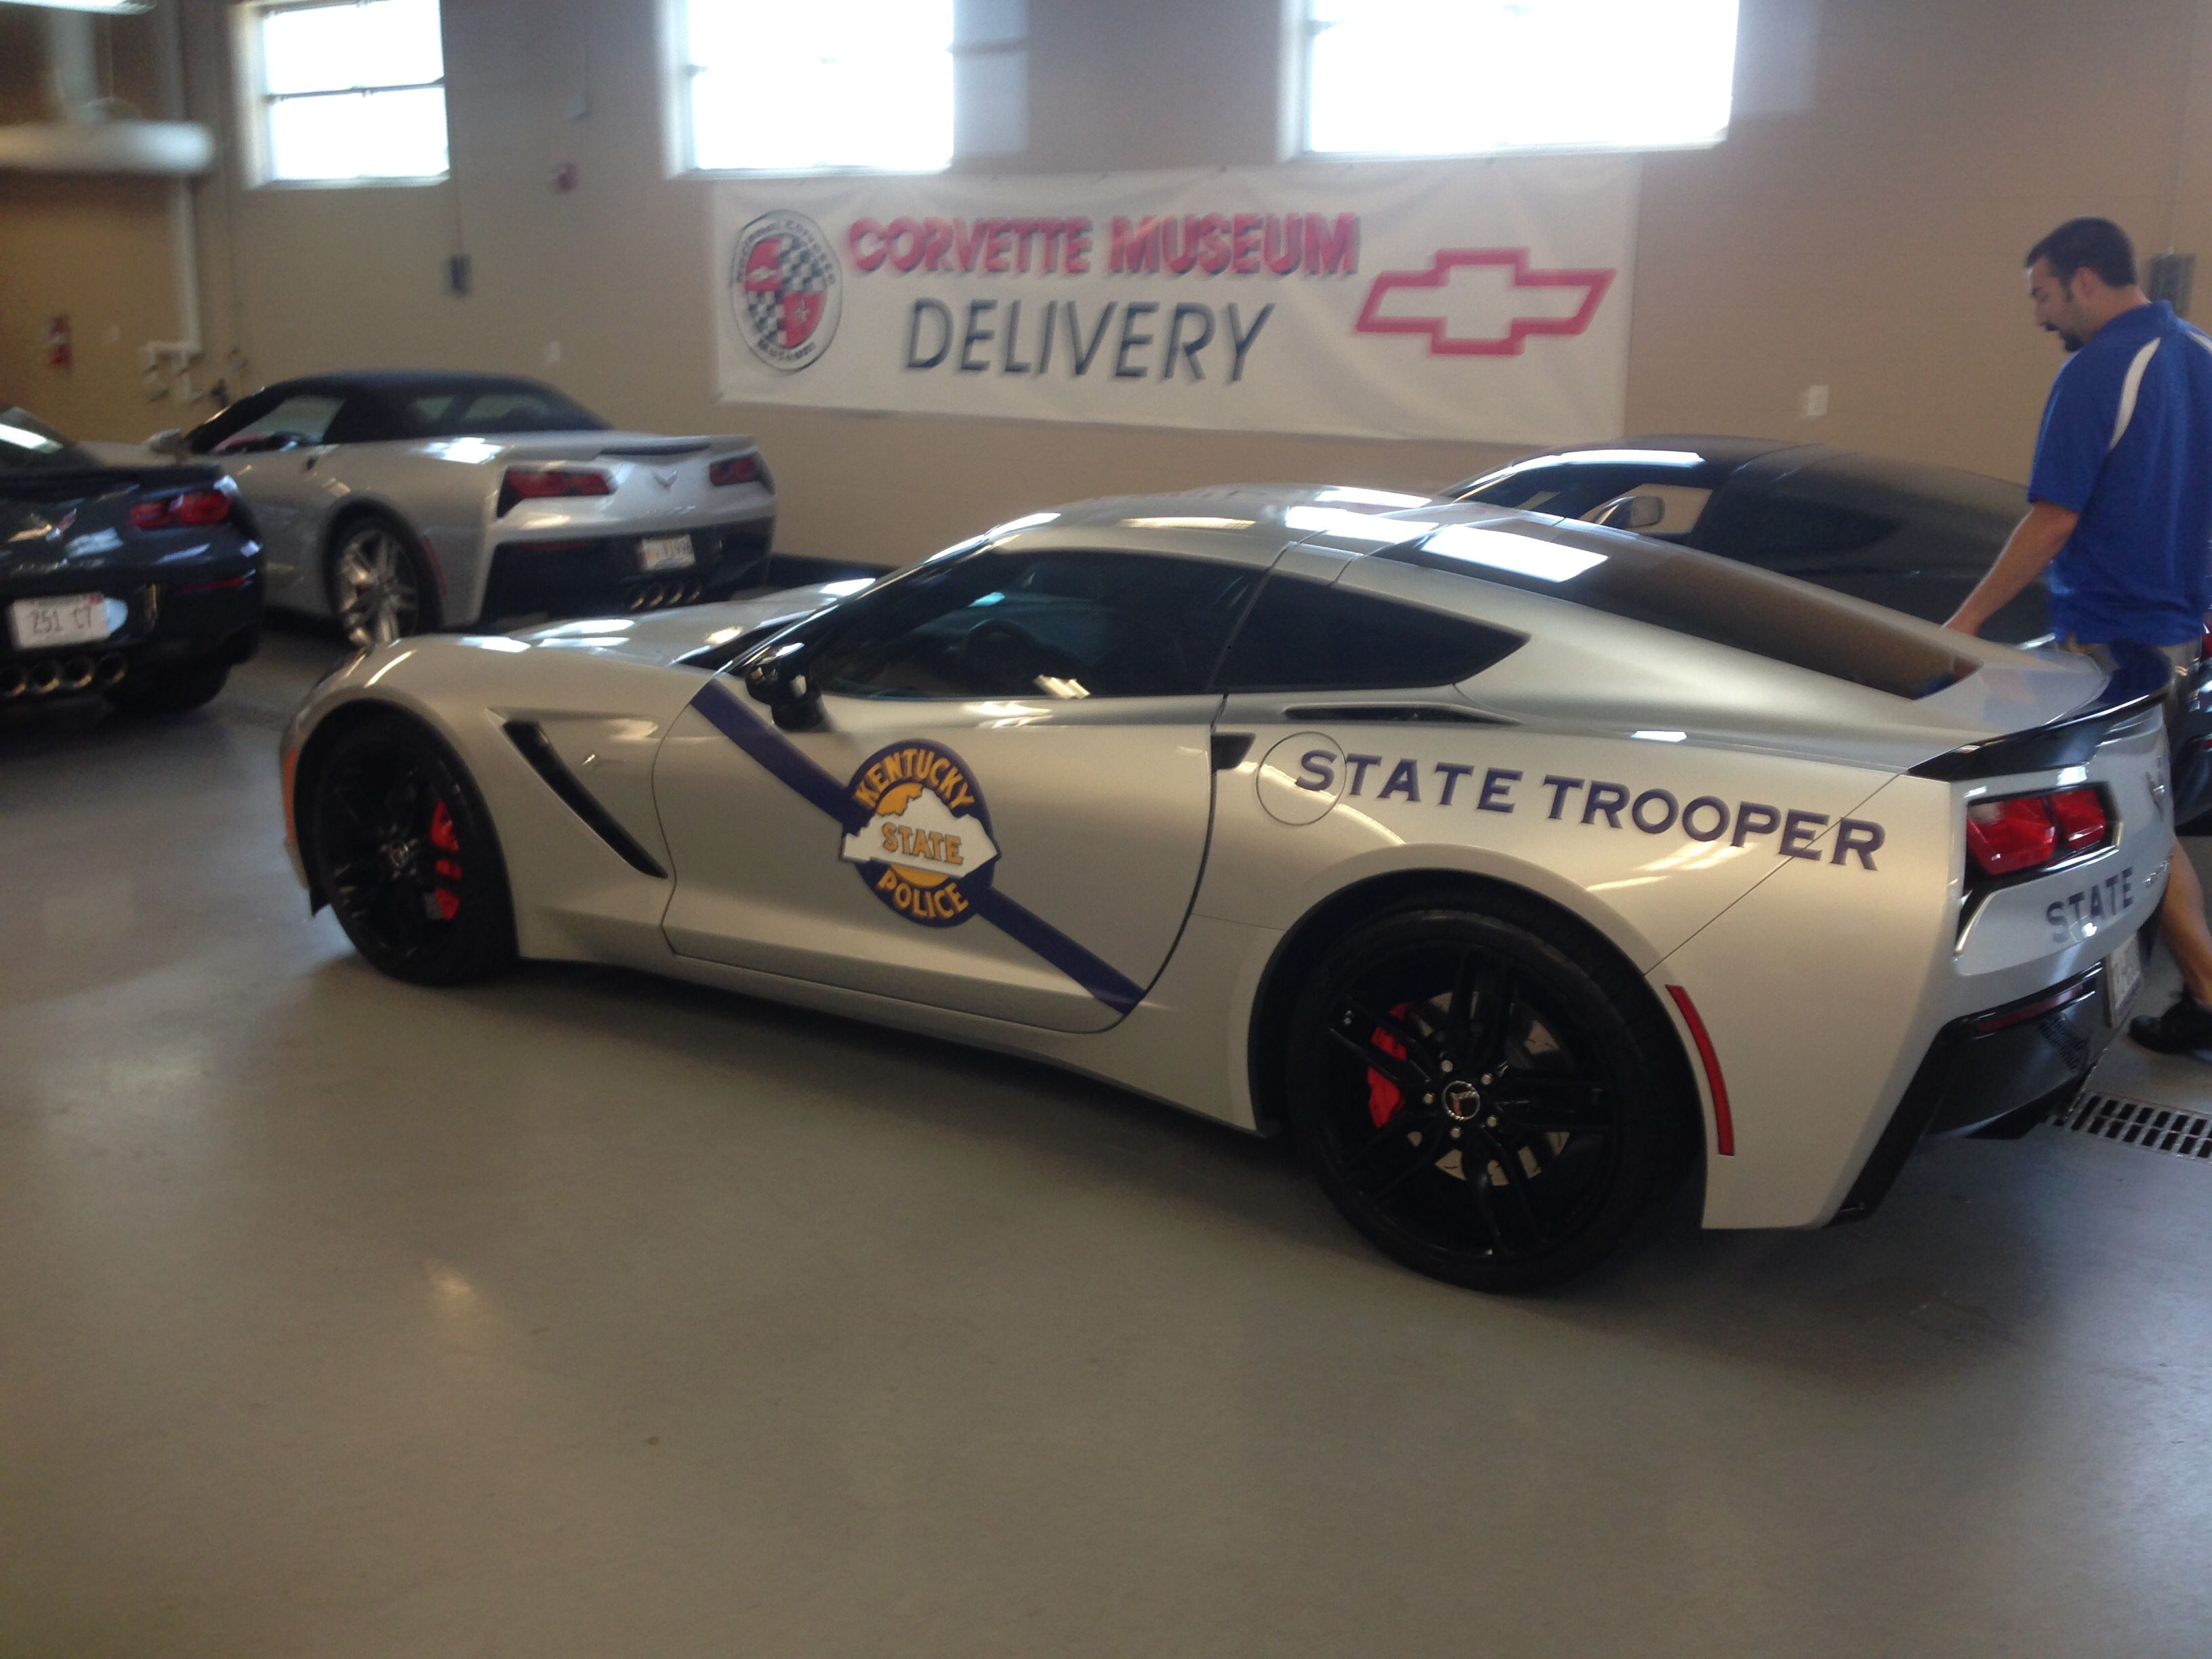 Ordinaire Kentucky State Police 2014 Corvette Stingray Corvette Homecoming August 2014  Corvette Rally National Corvette Museum